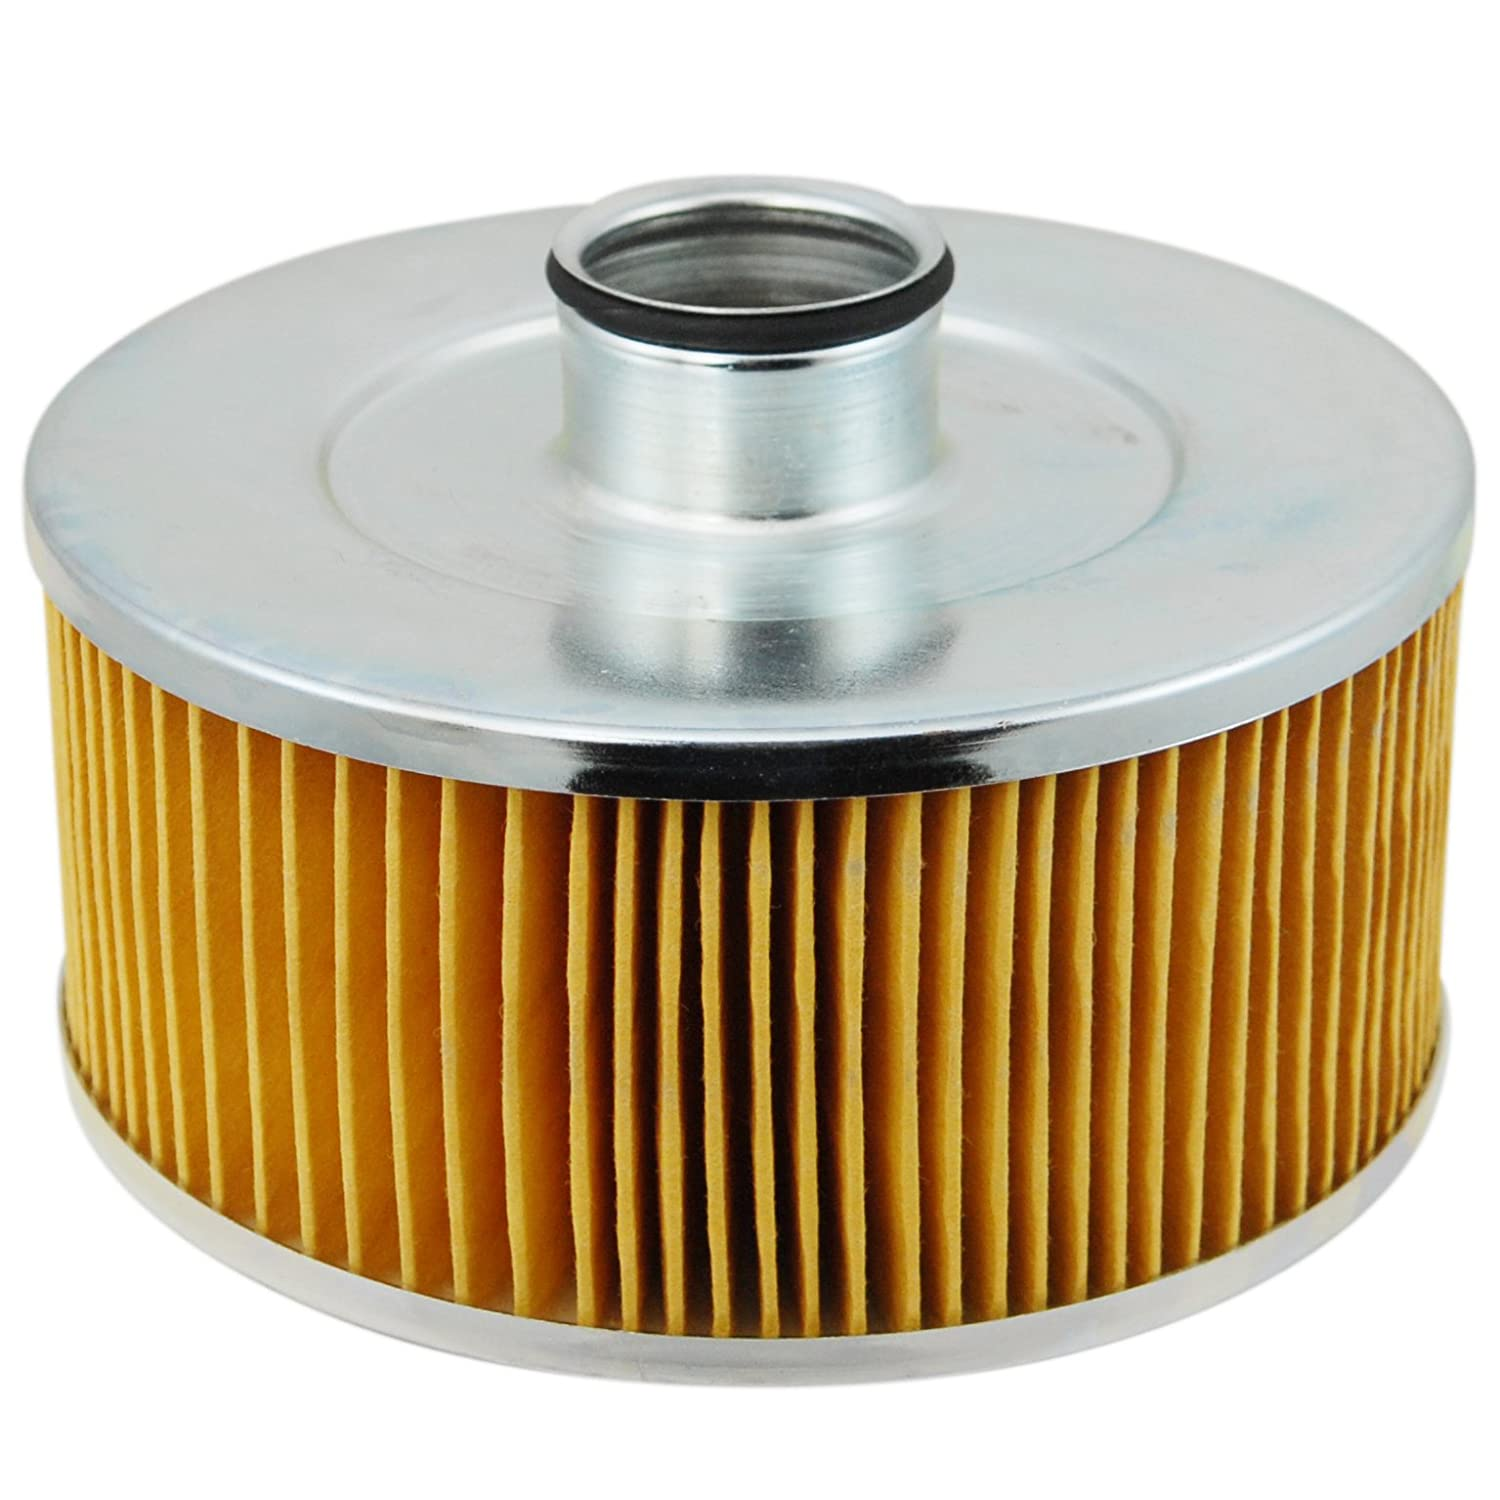 Tisco K920522 Hydraulic Oil Filter